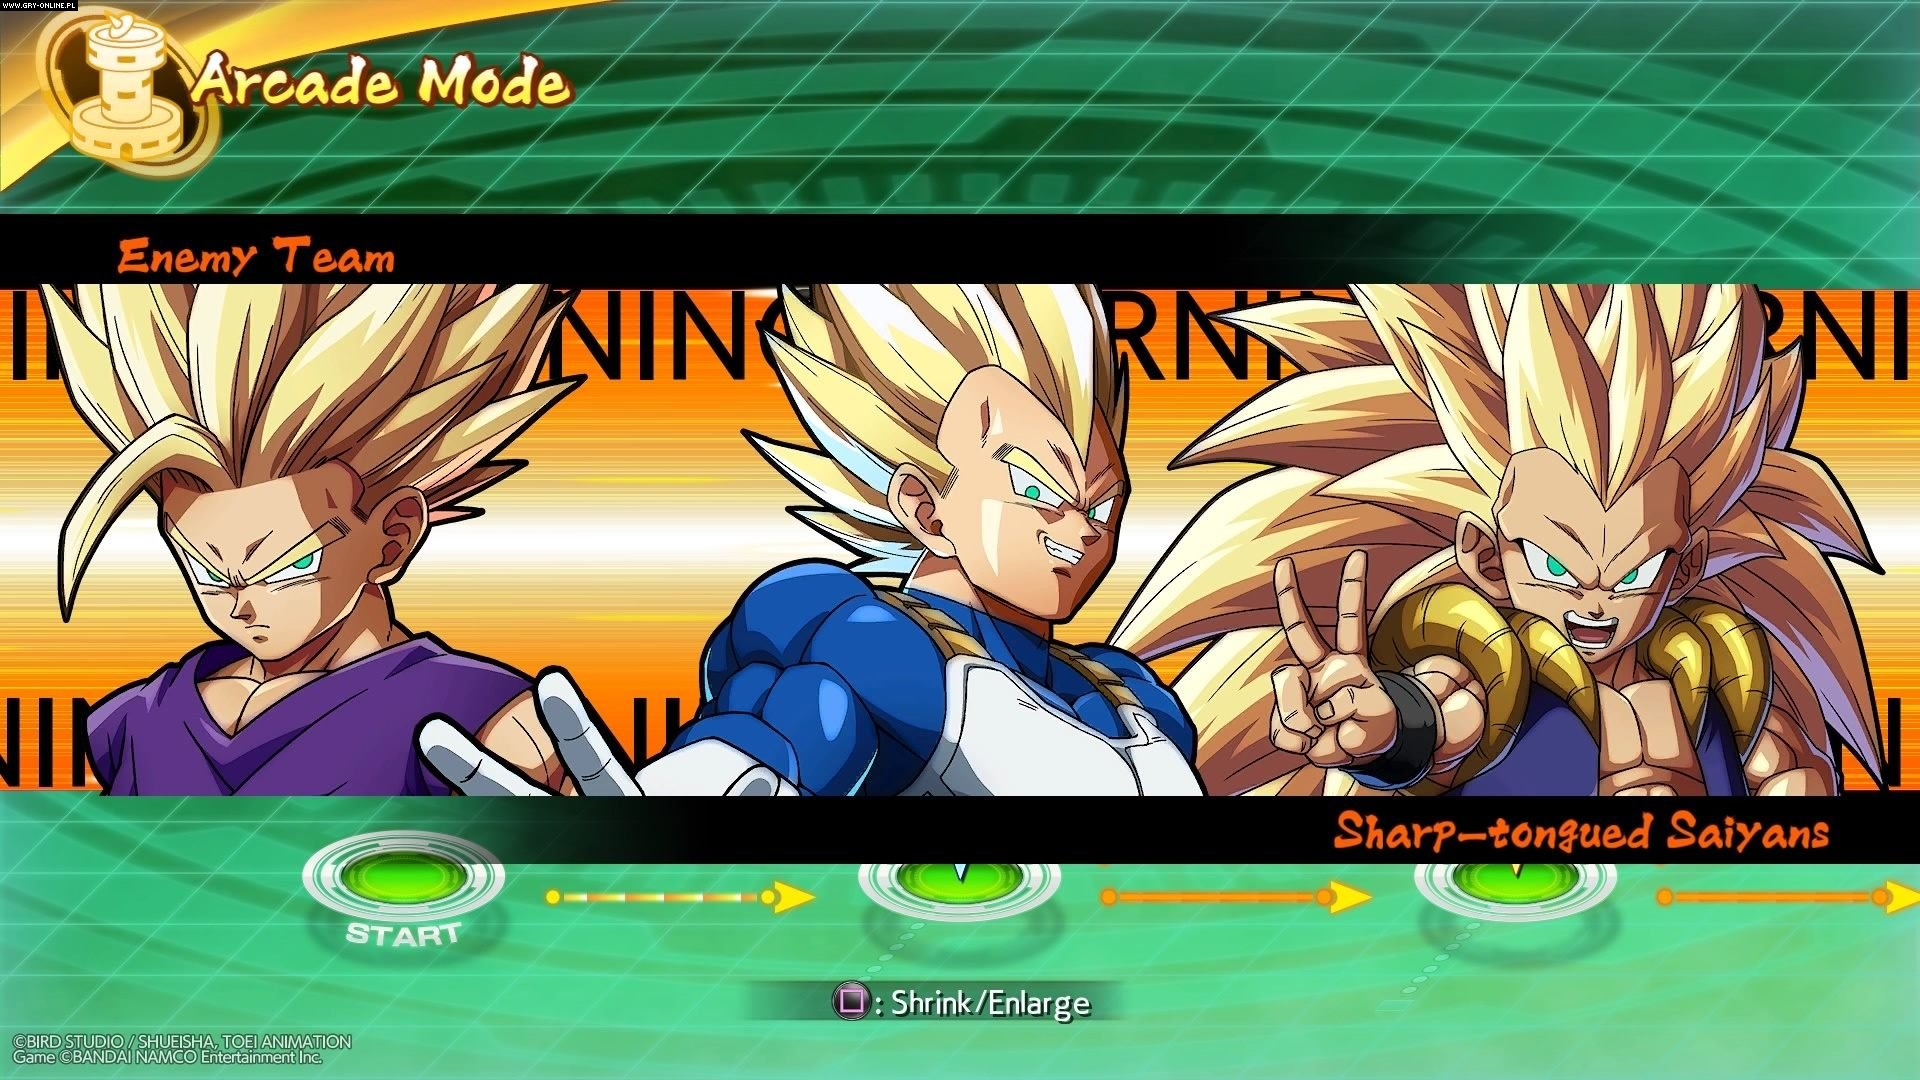 Dragon Ball FighterZ PC, PS4, XONE, Switch Gry Screen 126/230, Arc System Works, Bandai Namco Entertainment